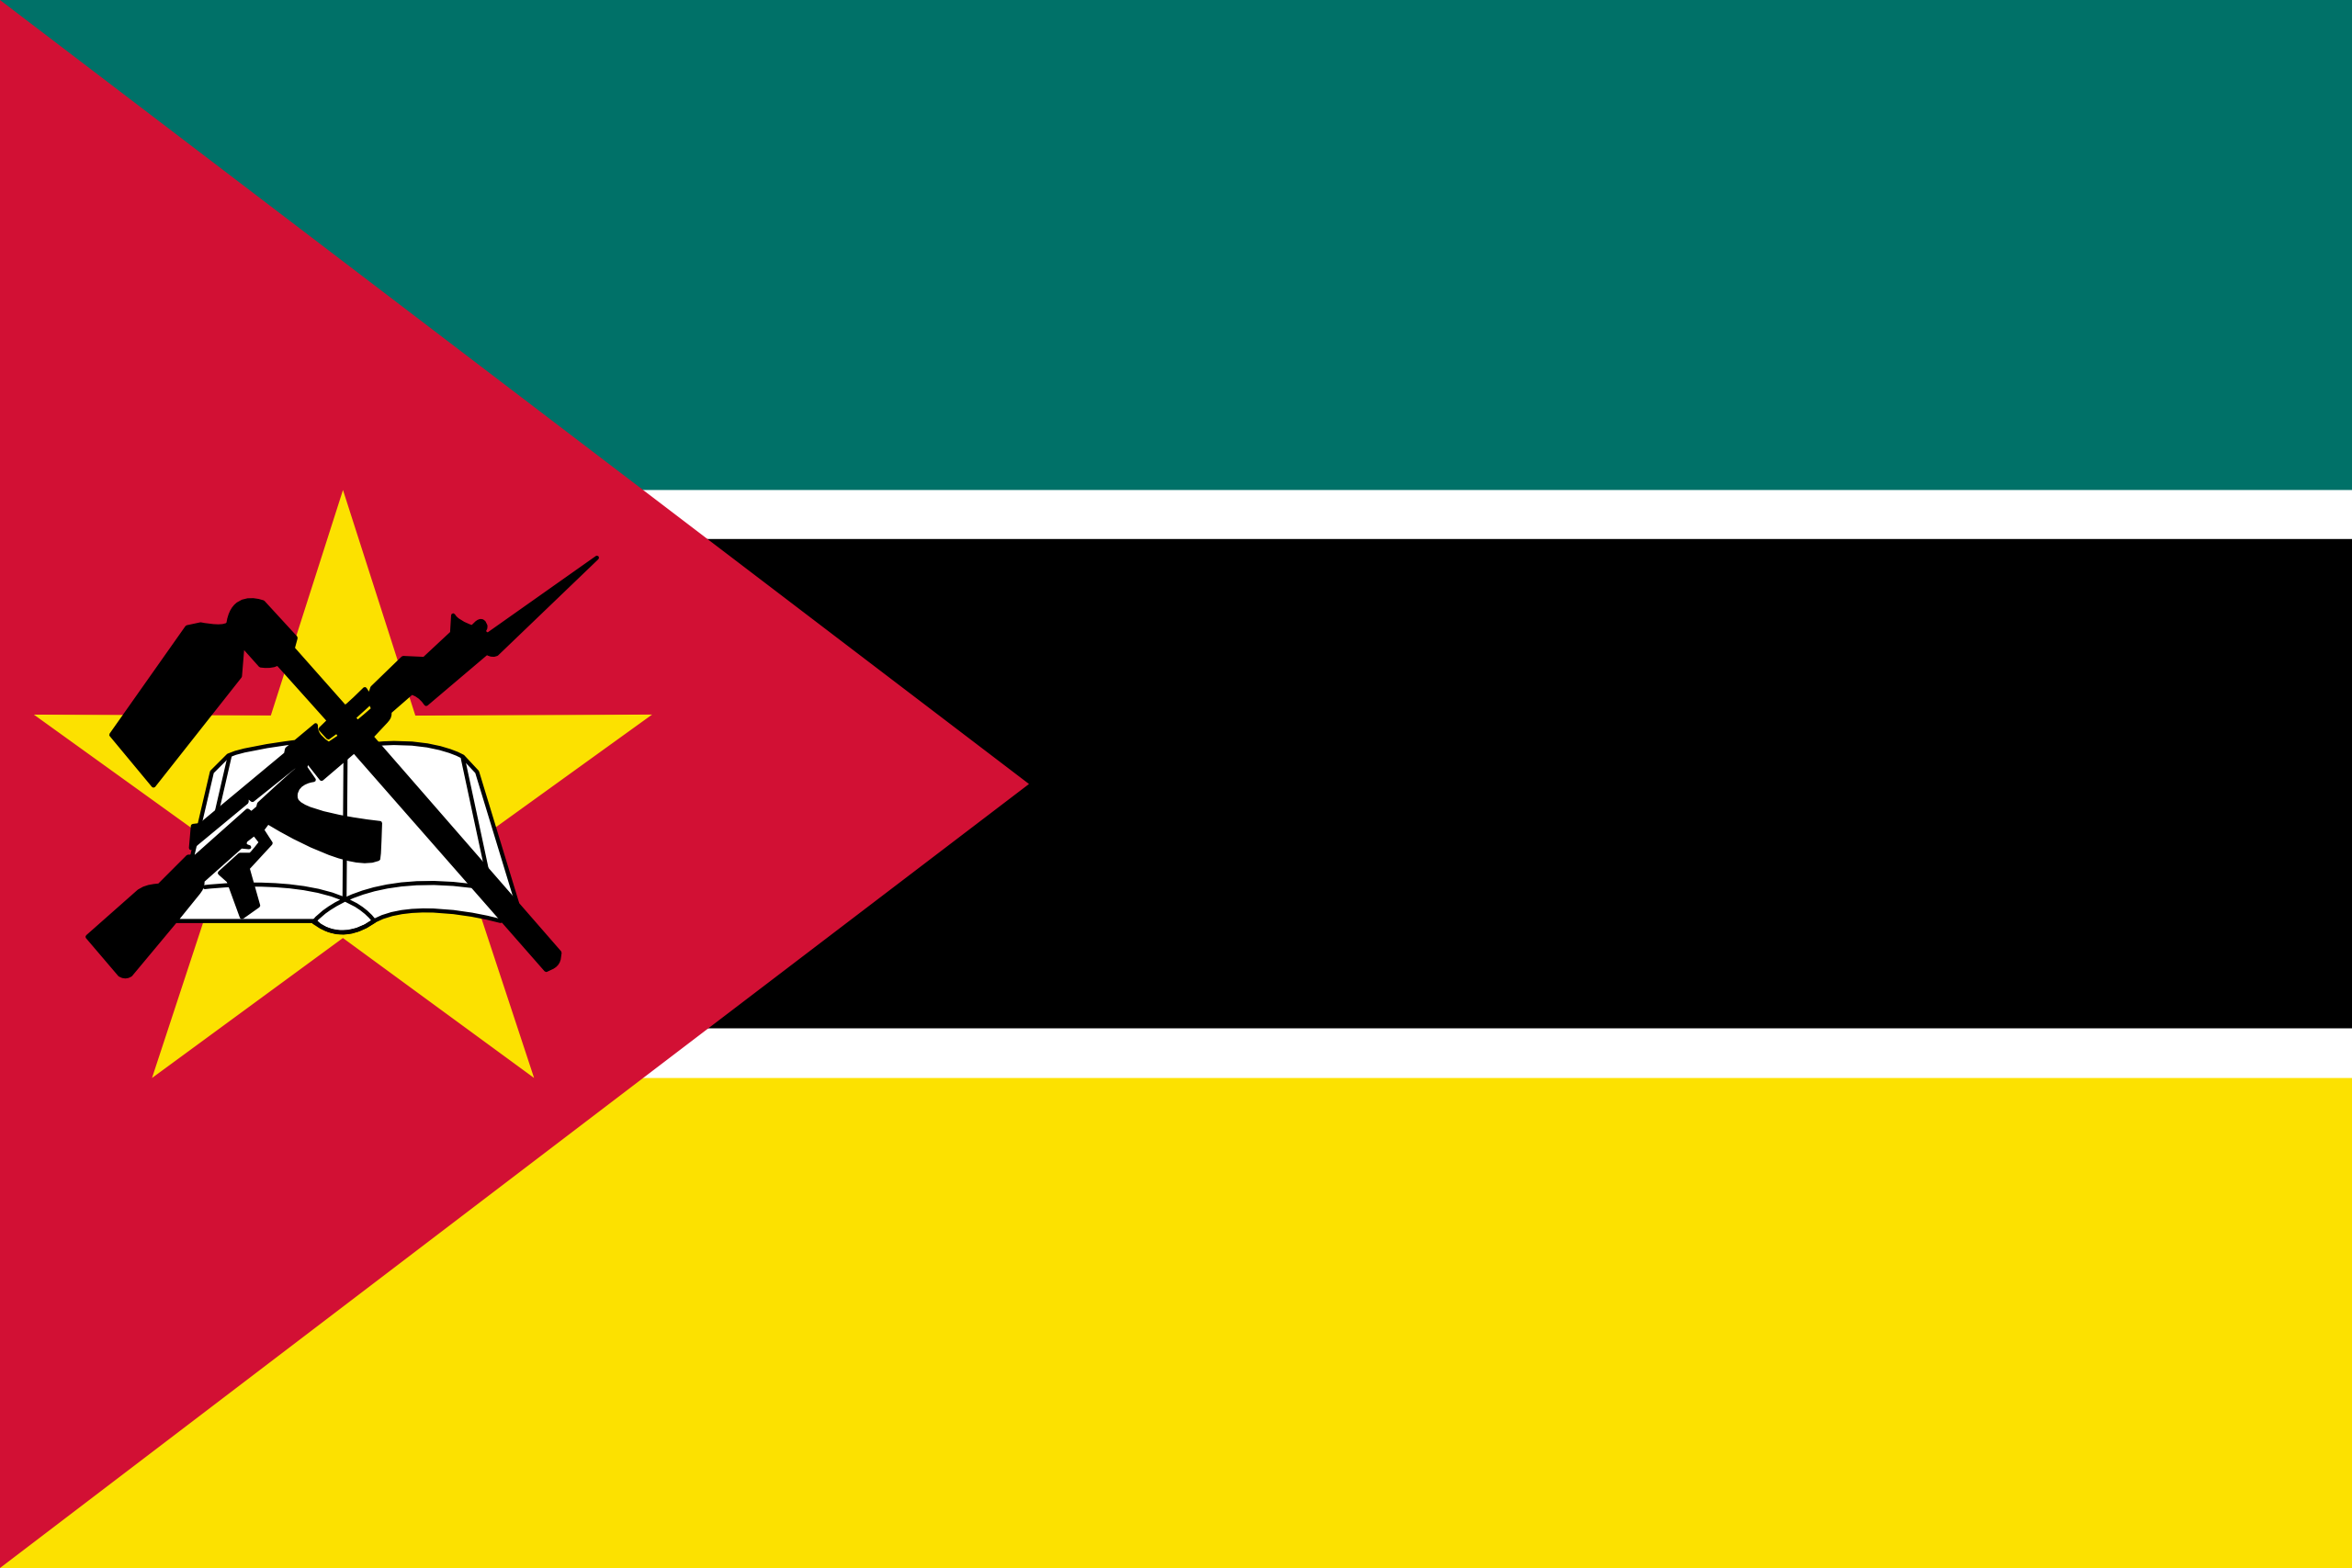 mozambique, país, emblema, insignia, σύμβολο - Wallpapers HD - Professor-falken.com